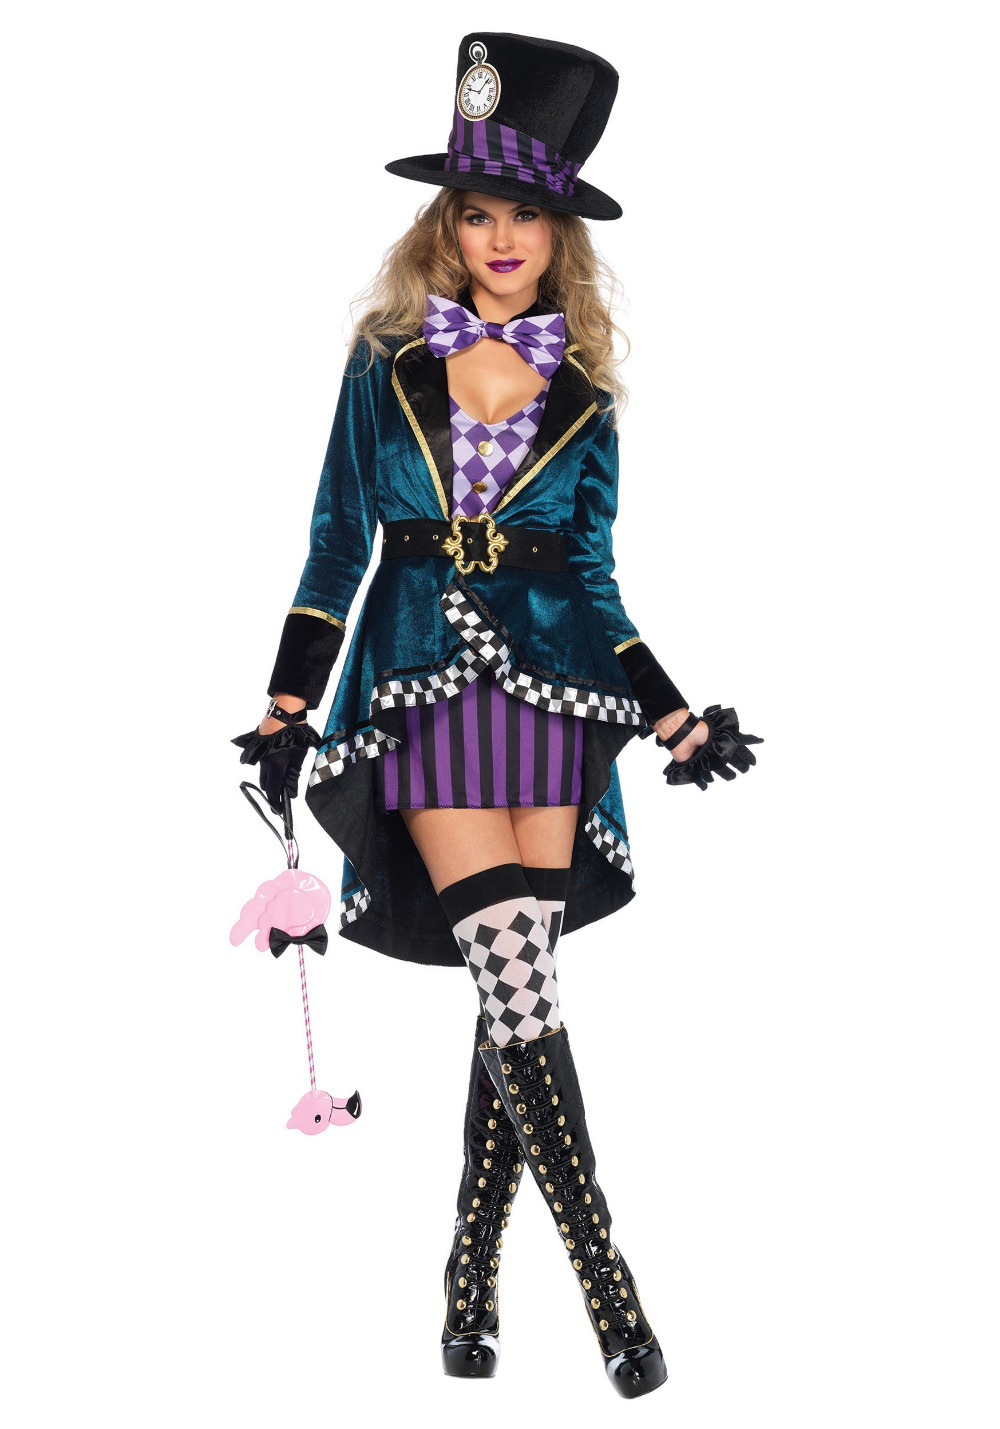 Adult Alice In Wonderland Mad Hatter Costume for Women Halloween Witch Dress Sexy Magician Costume Magic Show Wear